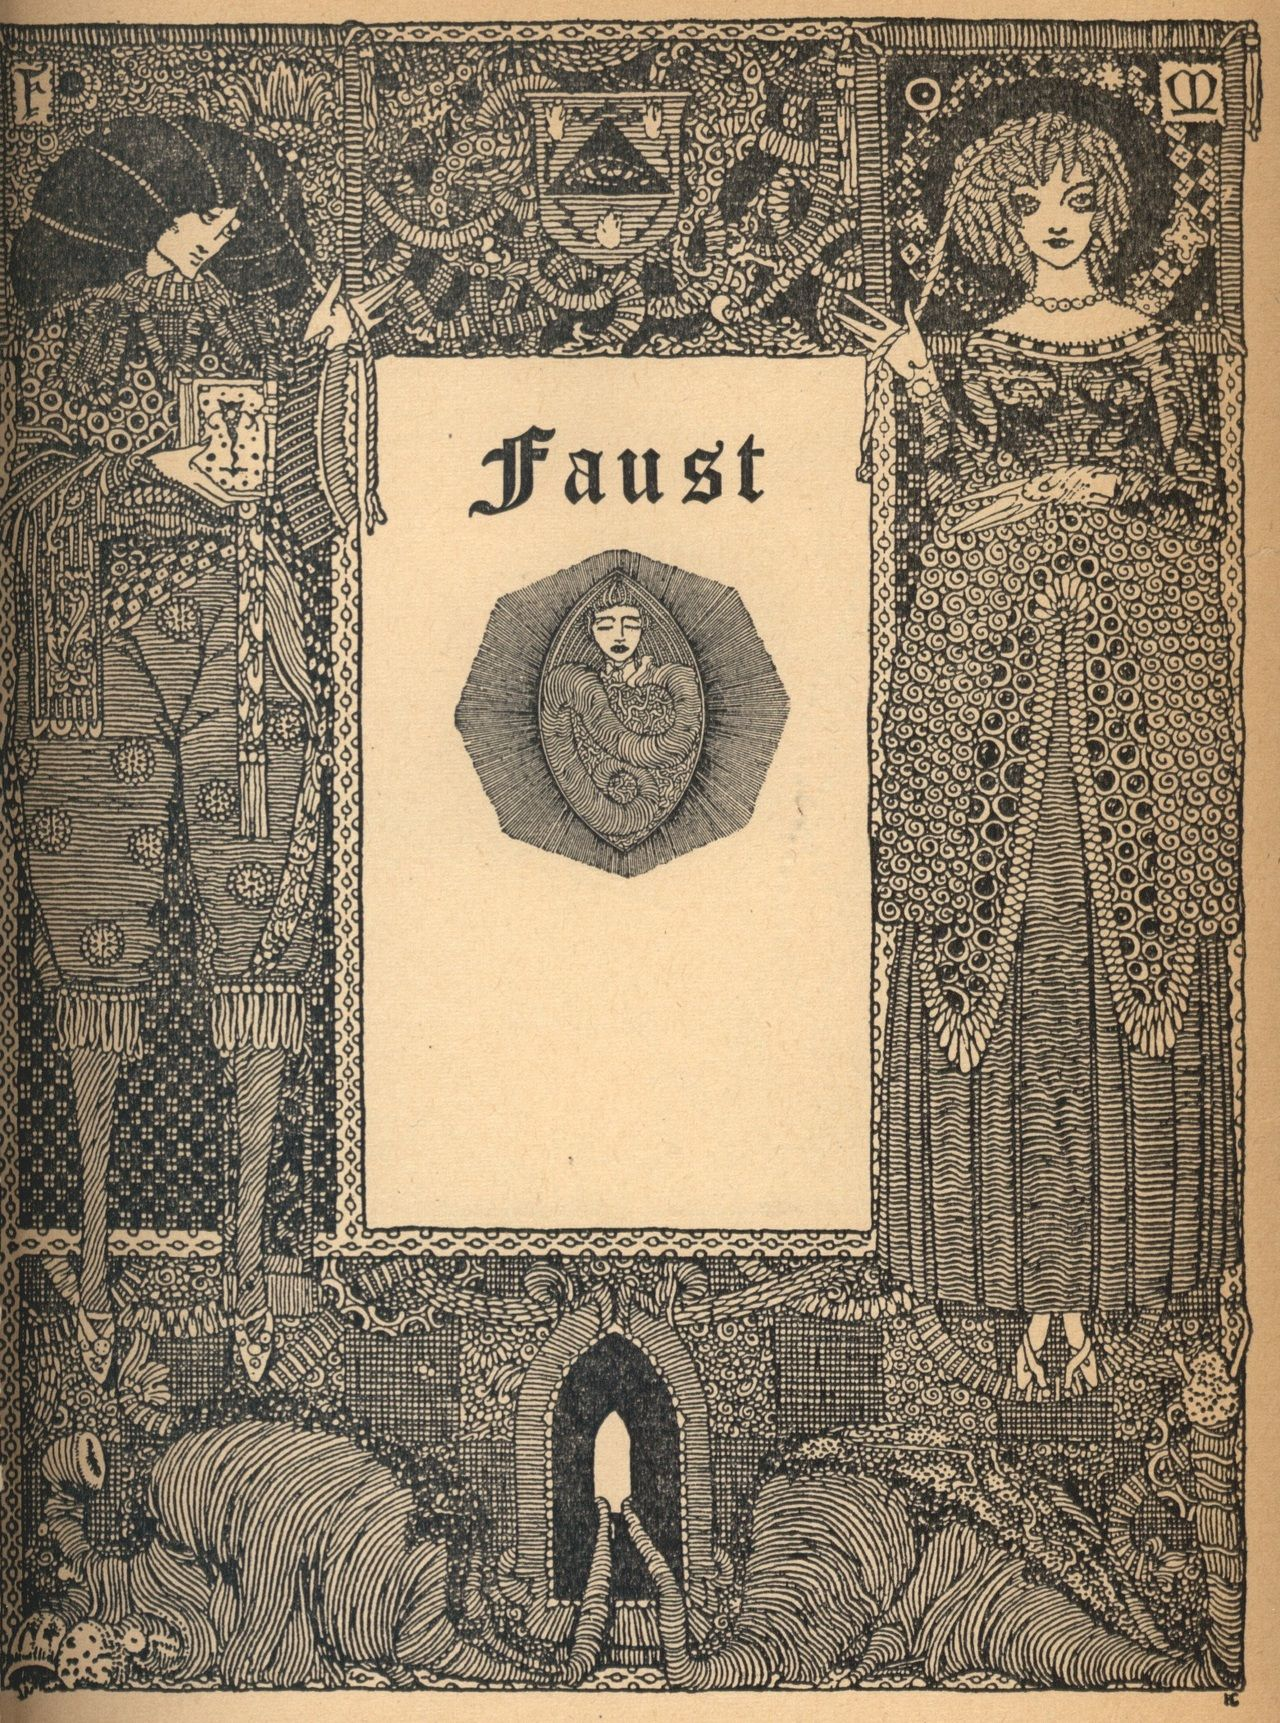 Illustration from goethes faust